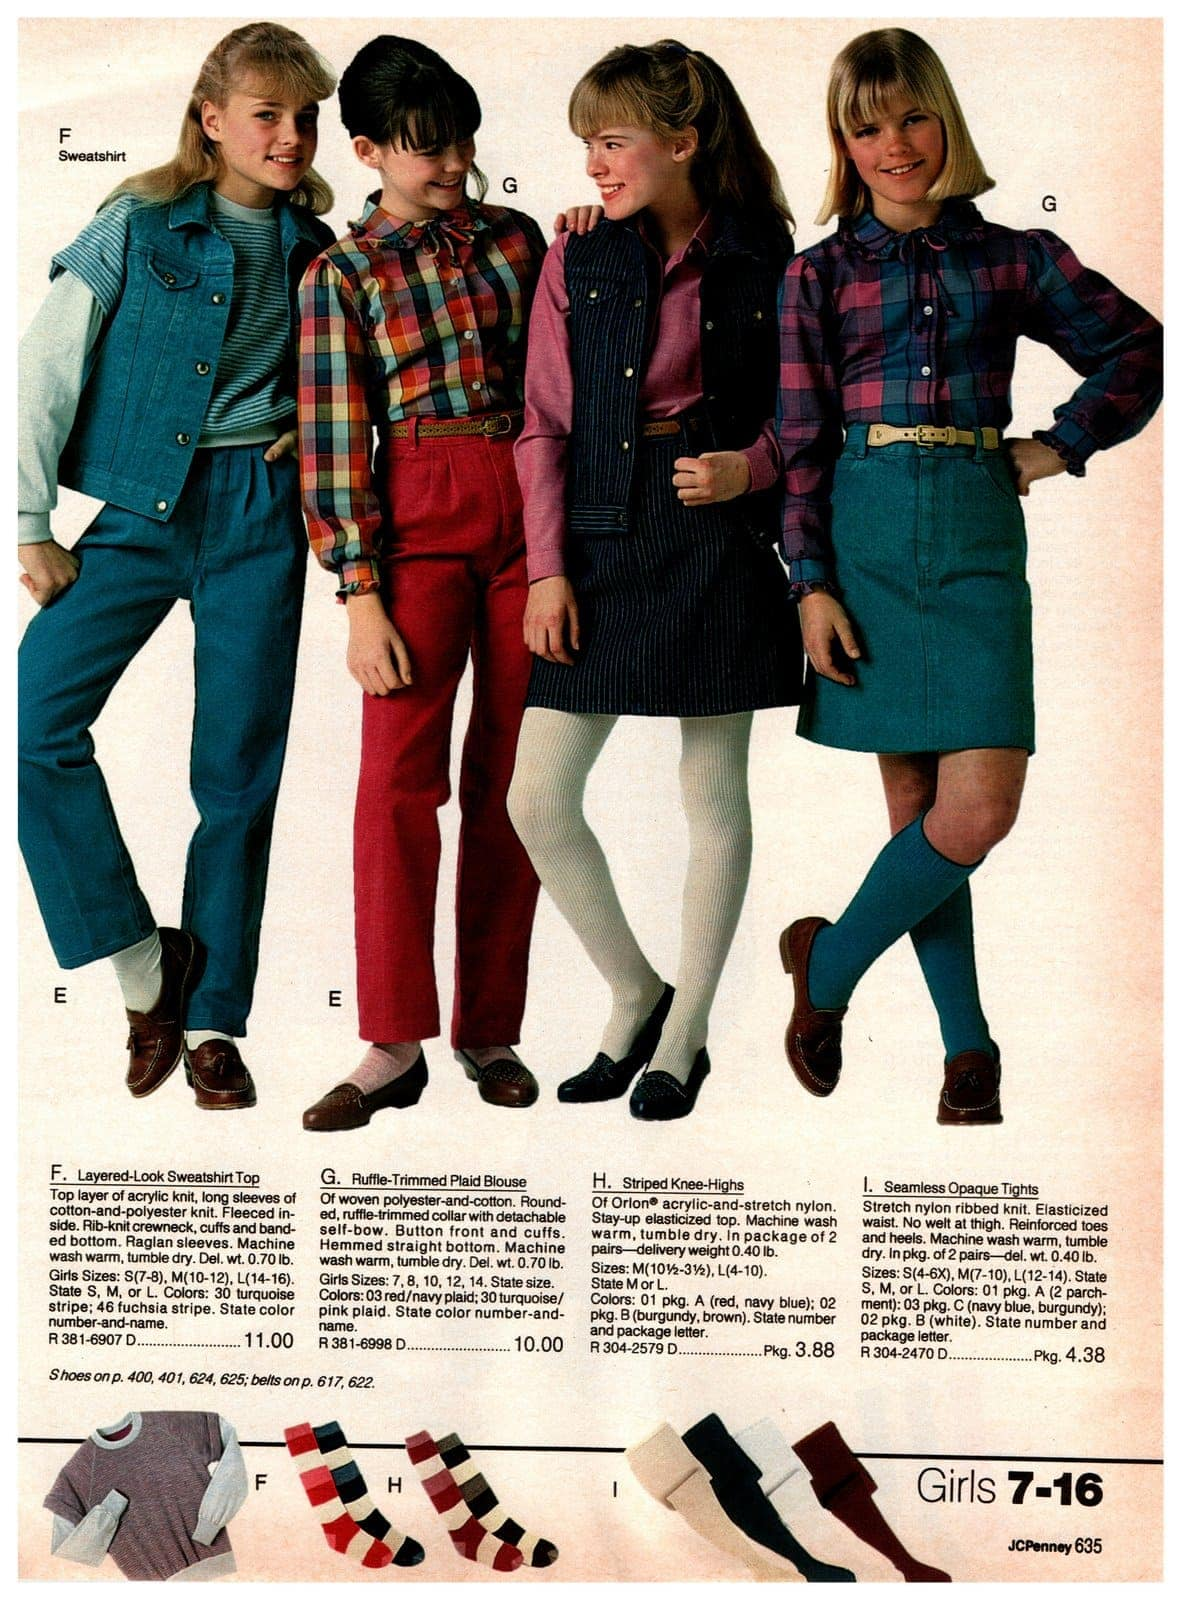 The hottest '80s styles for teens and tweens - ruffle-trimmed plaid blouses, striped knee-high shocks and sweatshirt tops